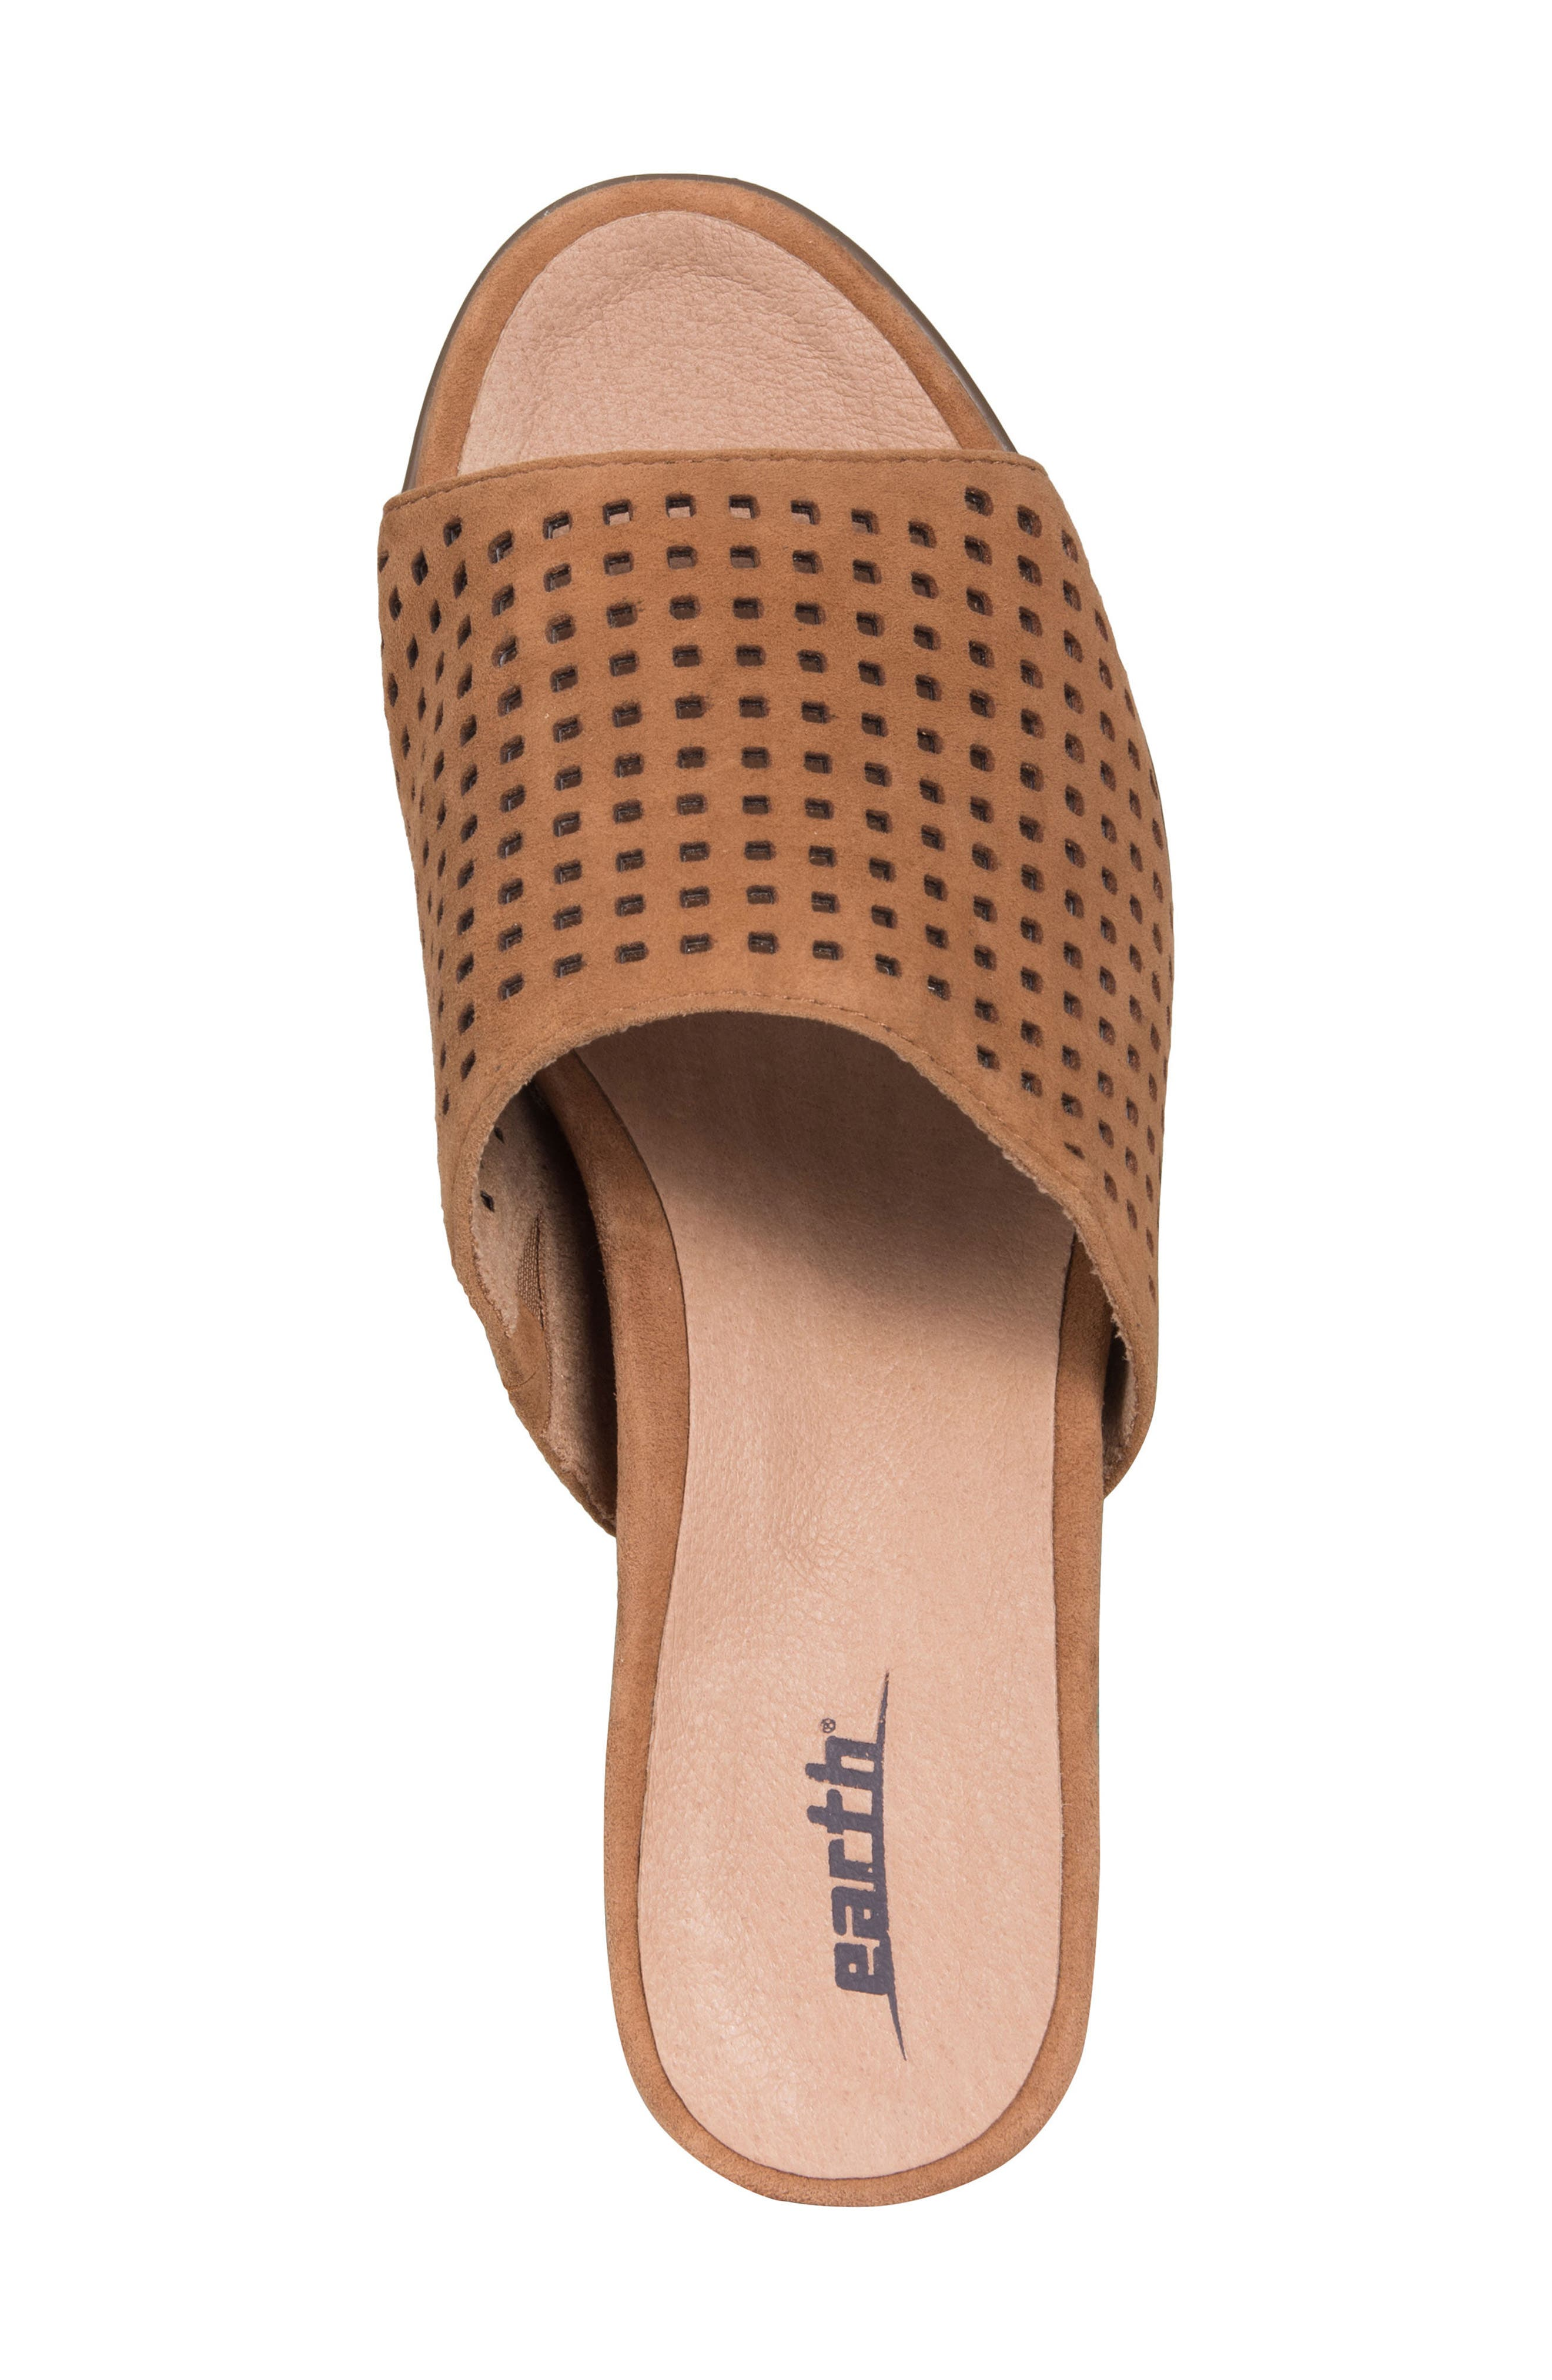 Ibiza Perforated Sandal,                             Alternate thumbnail 5, color,                             Amber Suede